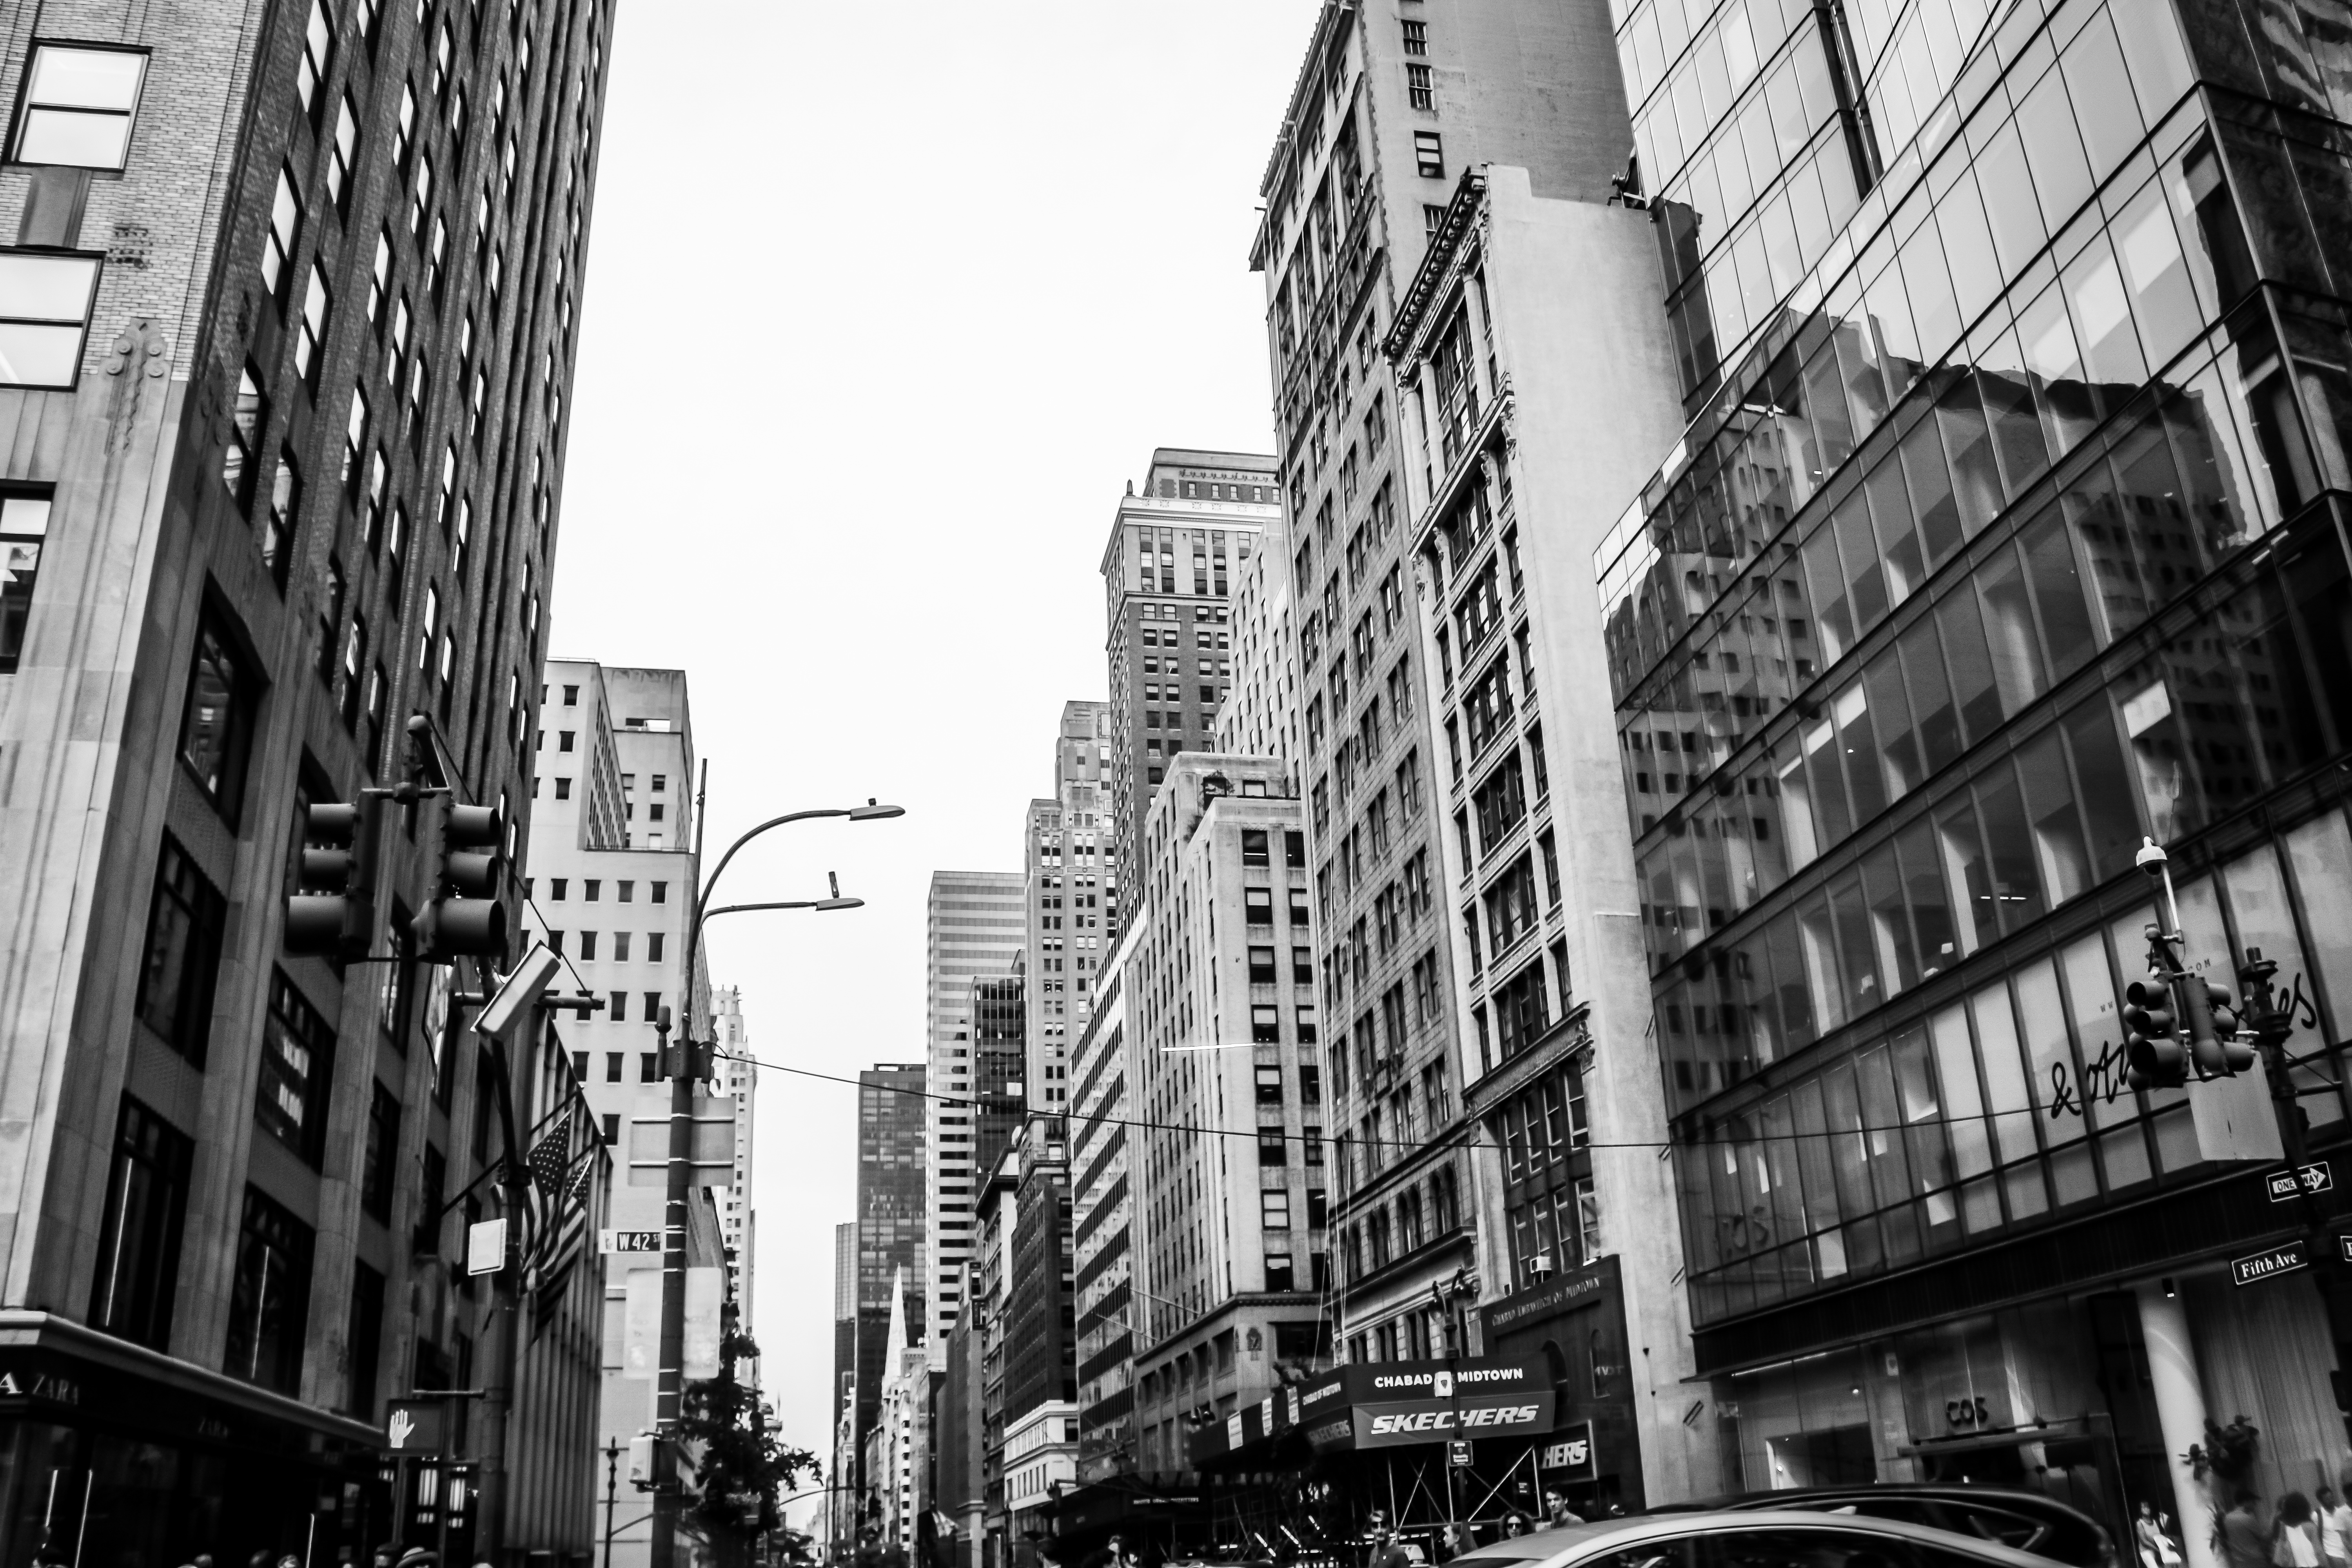 black and white photo of buildings in NYC